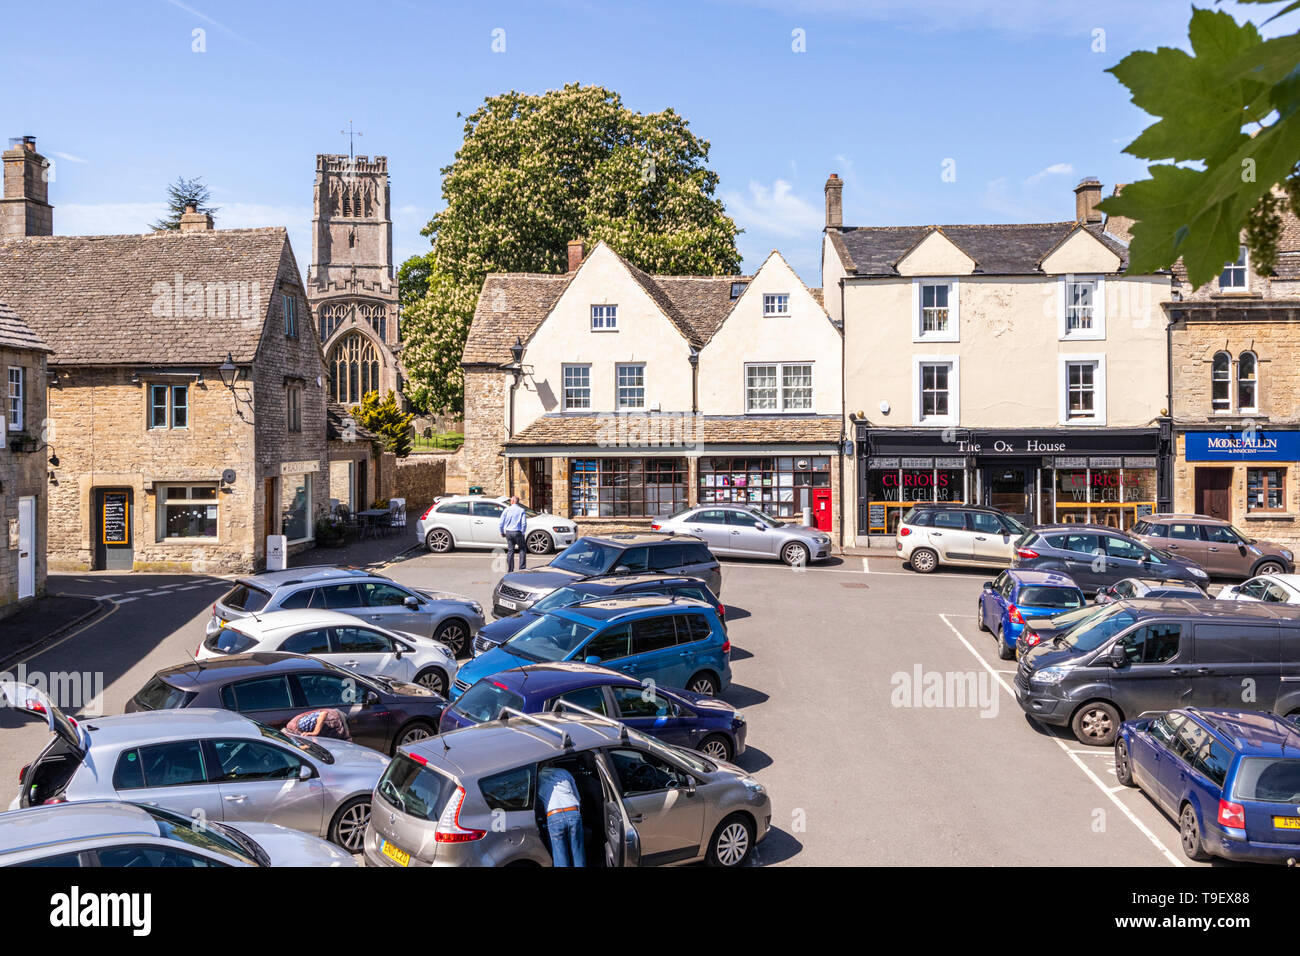 The Market Place in the ancient Cotswold town of Northleach, Gloucestershire UK - Stock Image